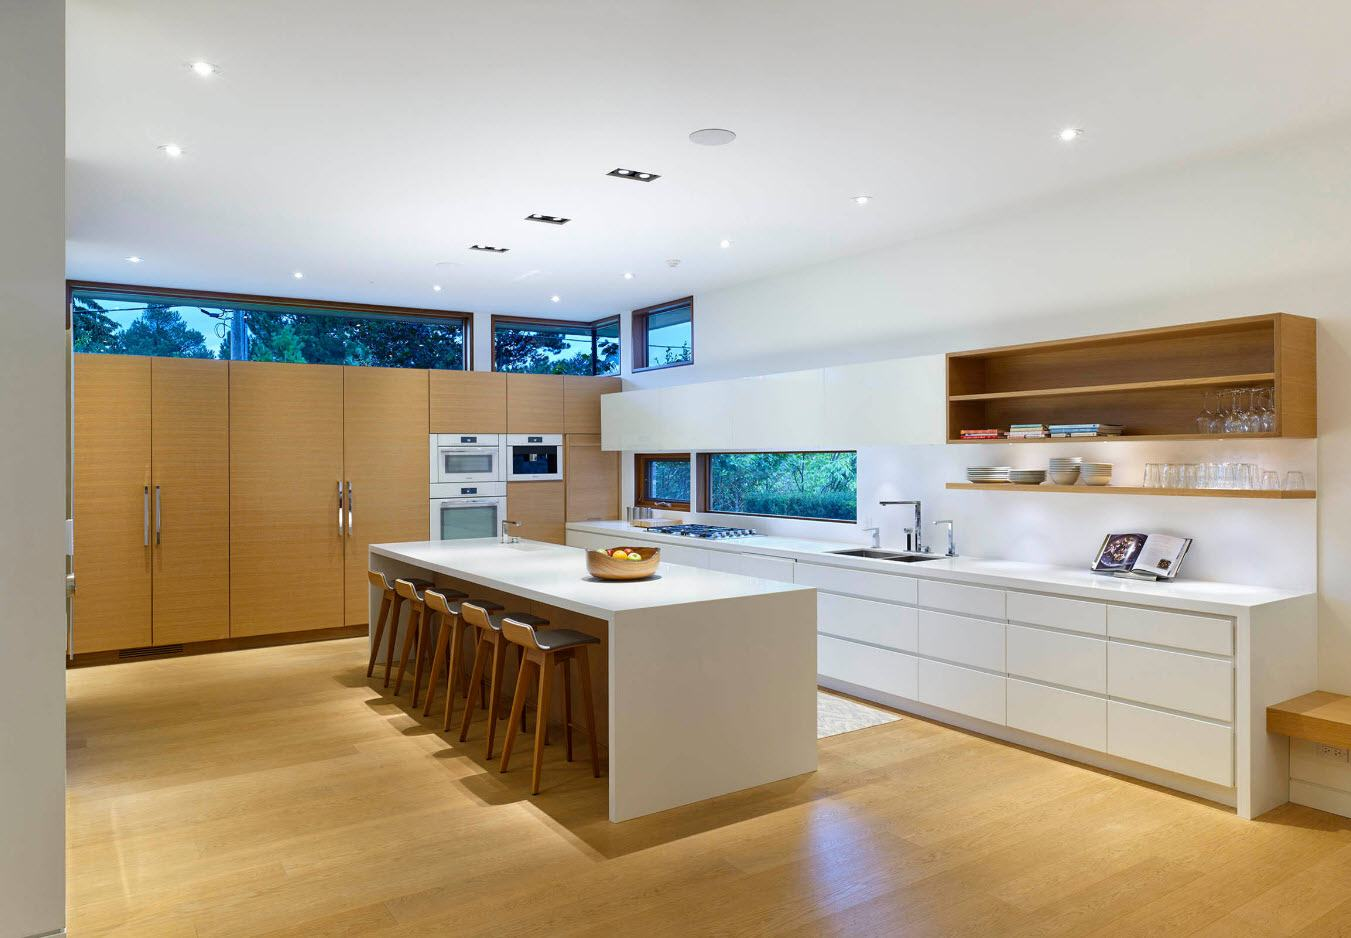 160 Square Feet Kitchen Design Ideas. Complex lighting in the large kitchen with white ceiling and light wooden floor